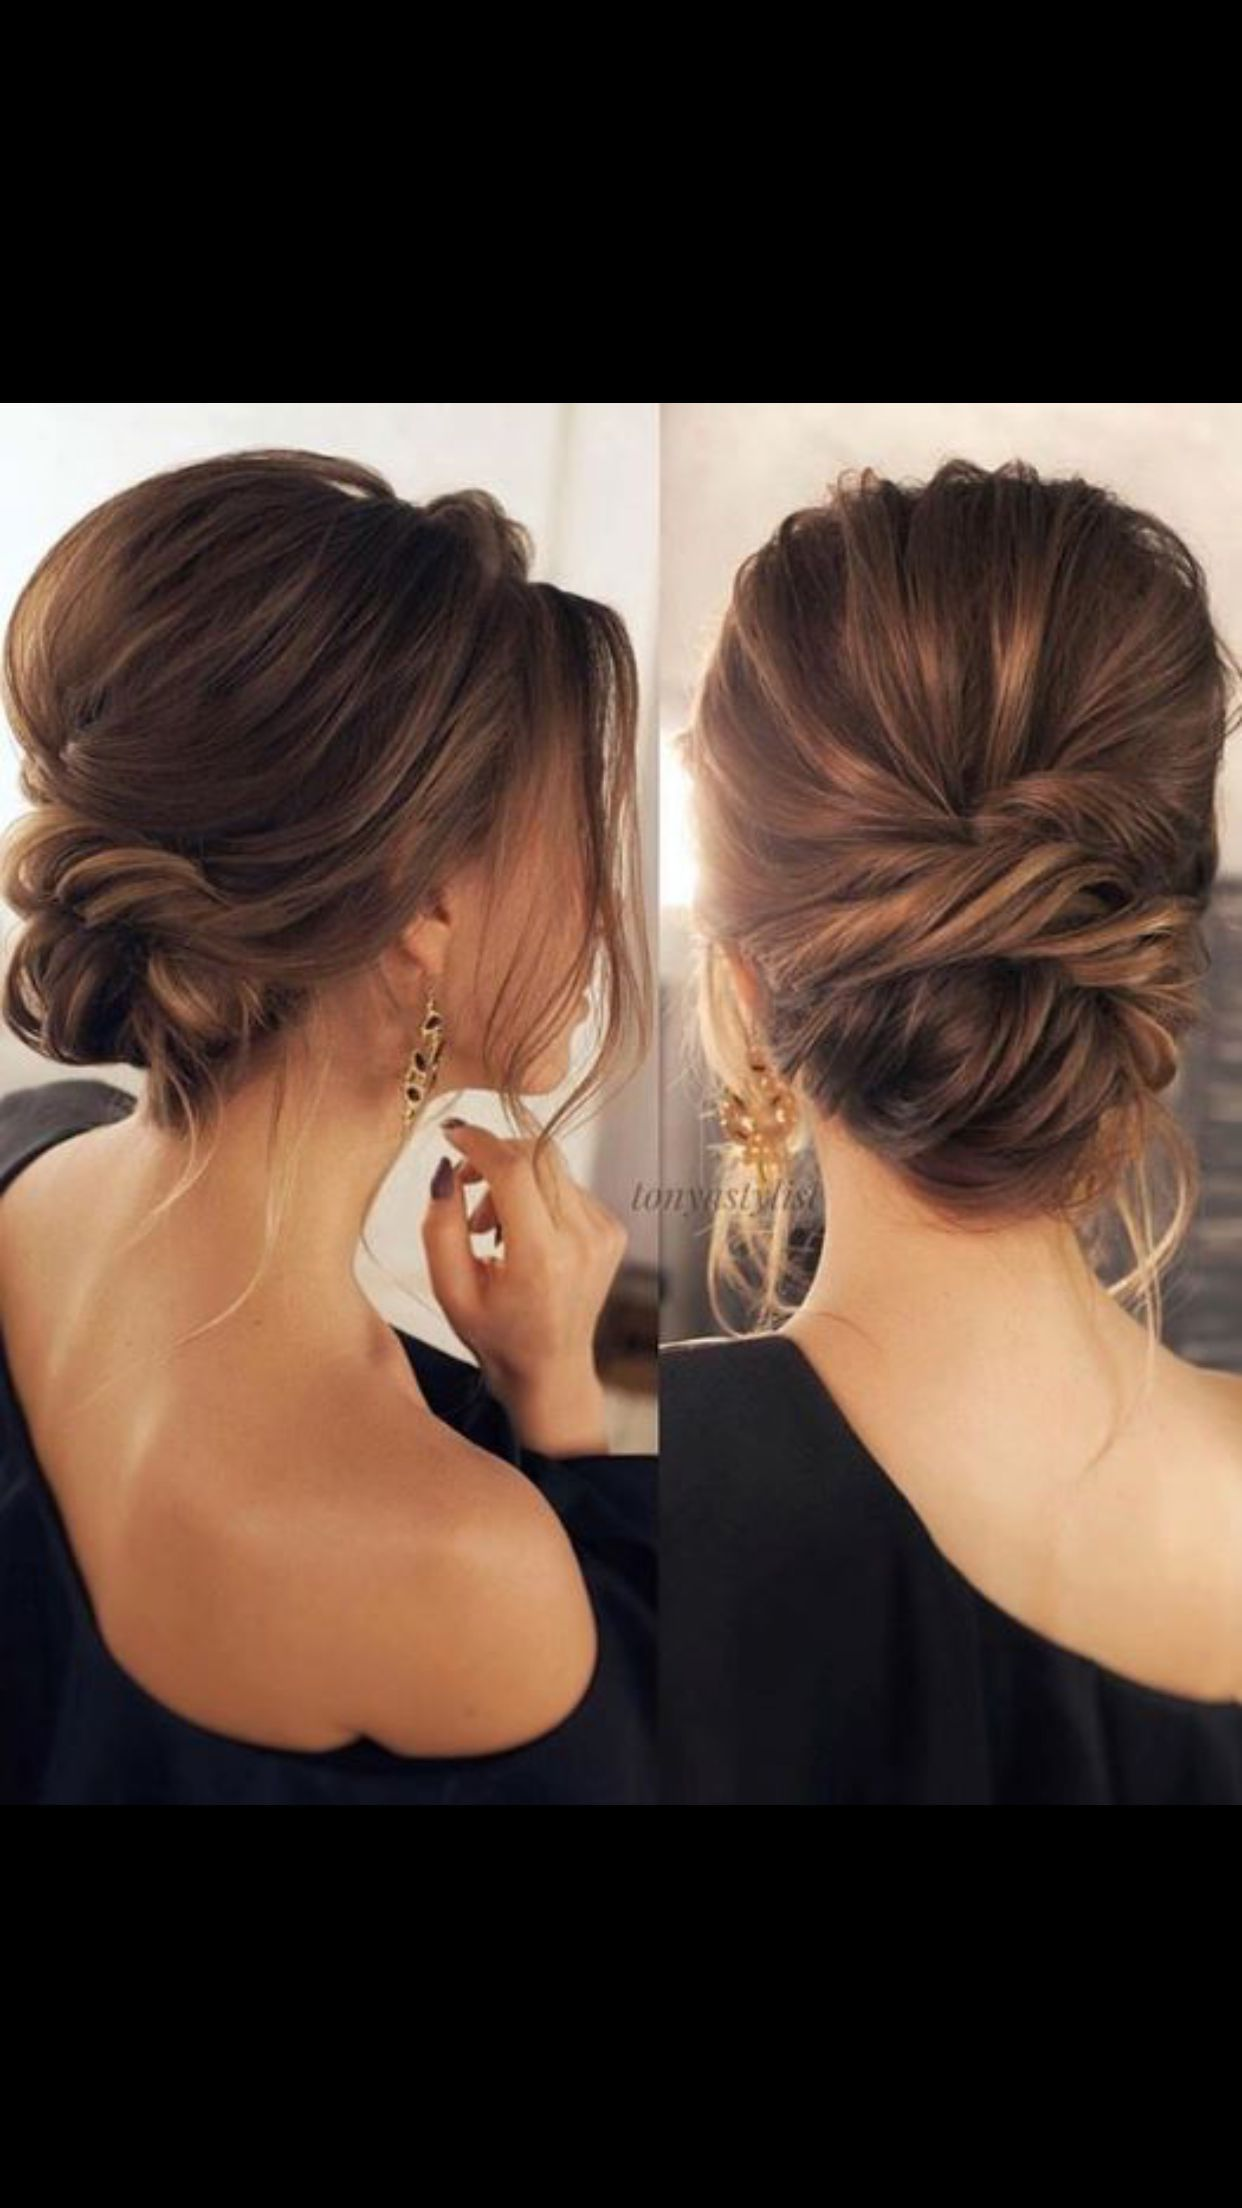 Try On Hairstyles Cute Hairstyles For Long Hair How To Get Straight Hair For Mens 20180923 Prom Hair Updo Curly Bridal Hair Bridal Hair Updo